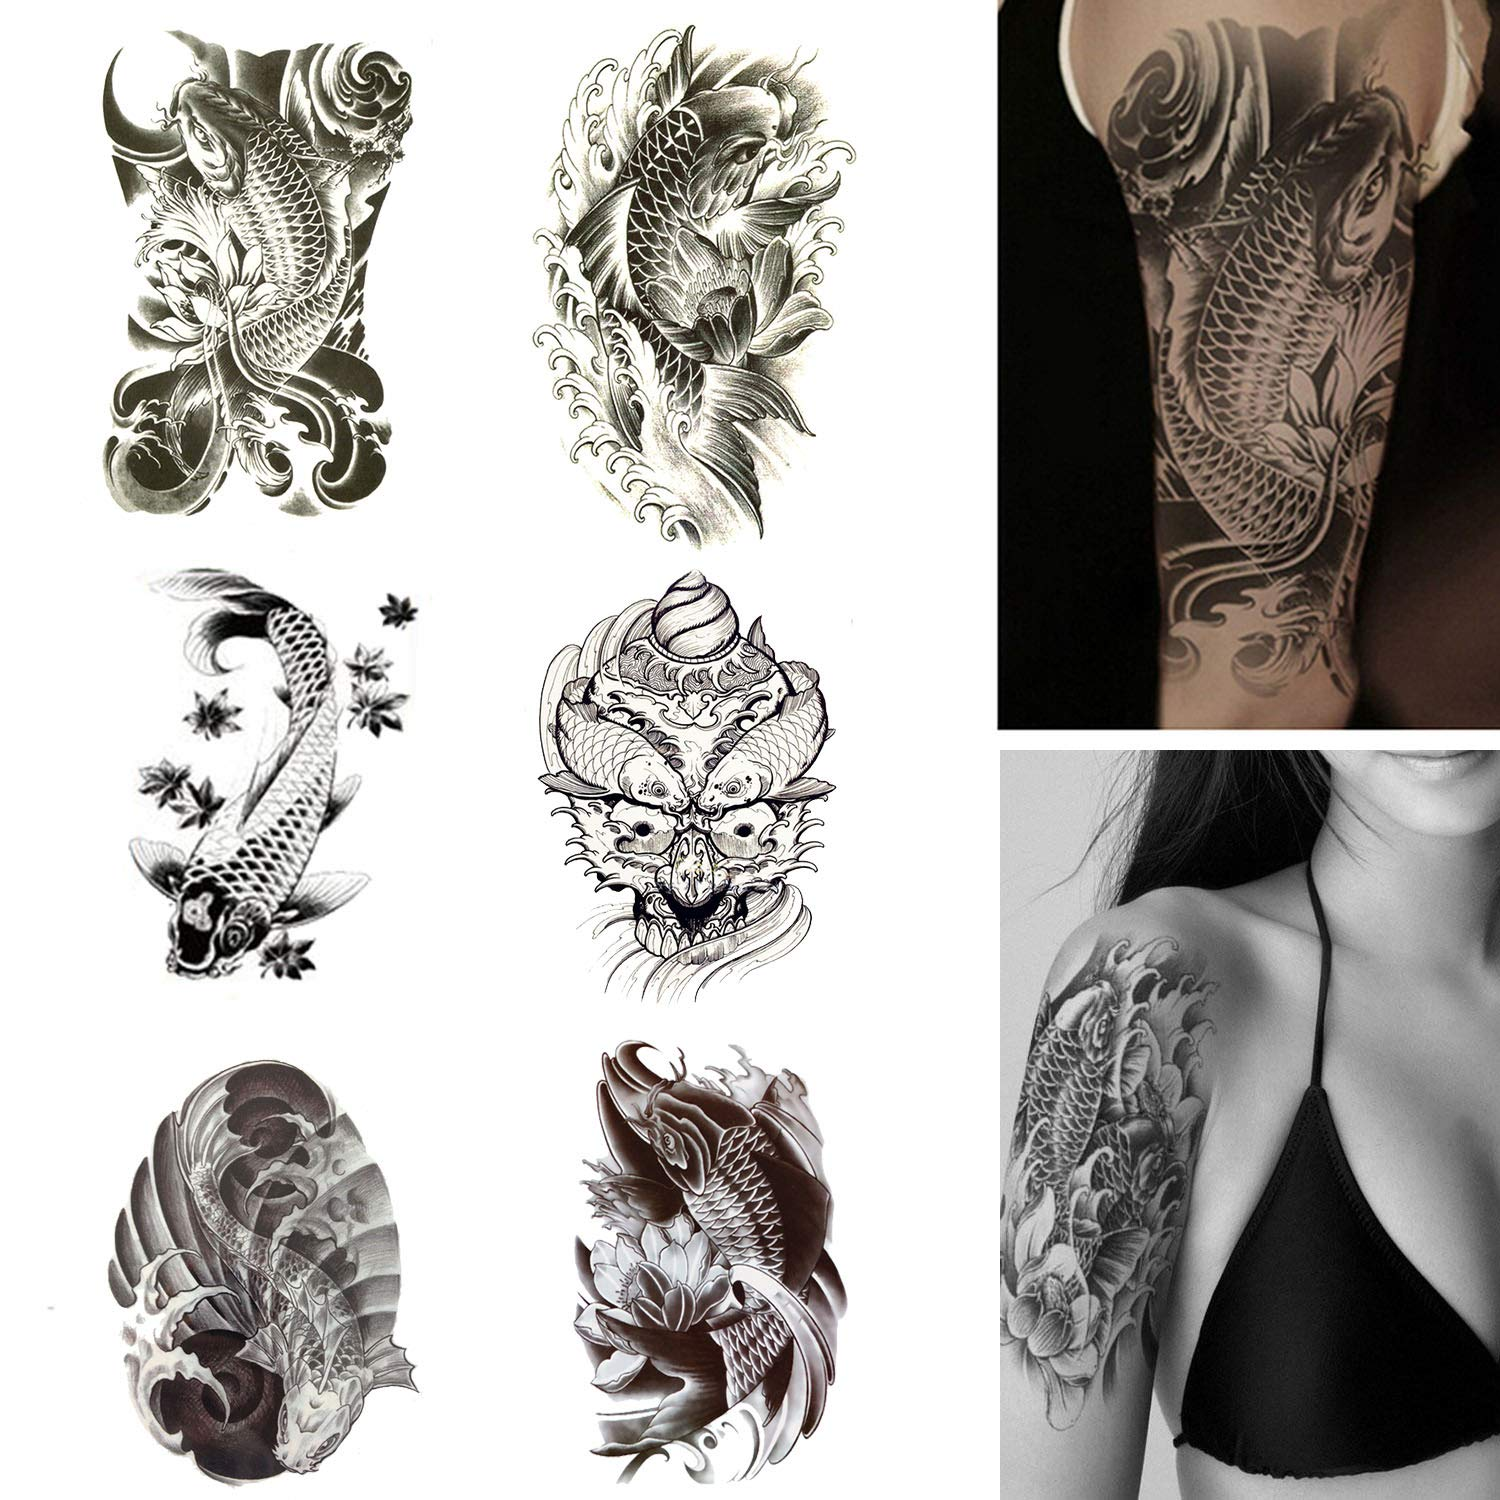 176ef8238b935 Amazon.com : Koi Fish Temporary Tattoos Large Fake Tattoo Stickers Black  and White Fish with Lotus for Men Women Arm Shoulder Body Make Up Set :  Beauty